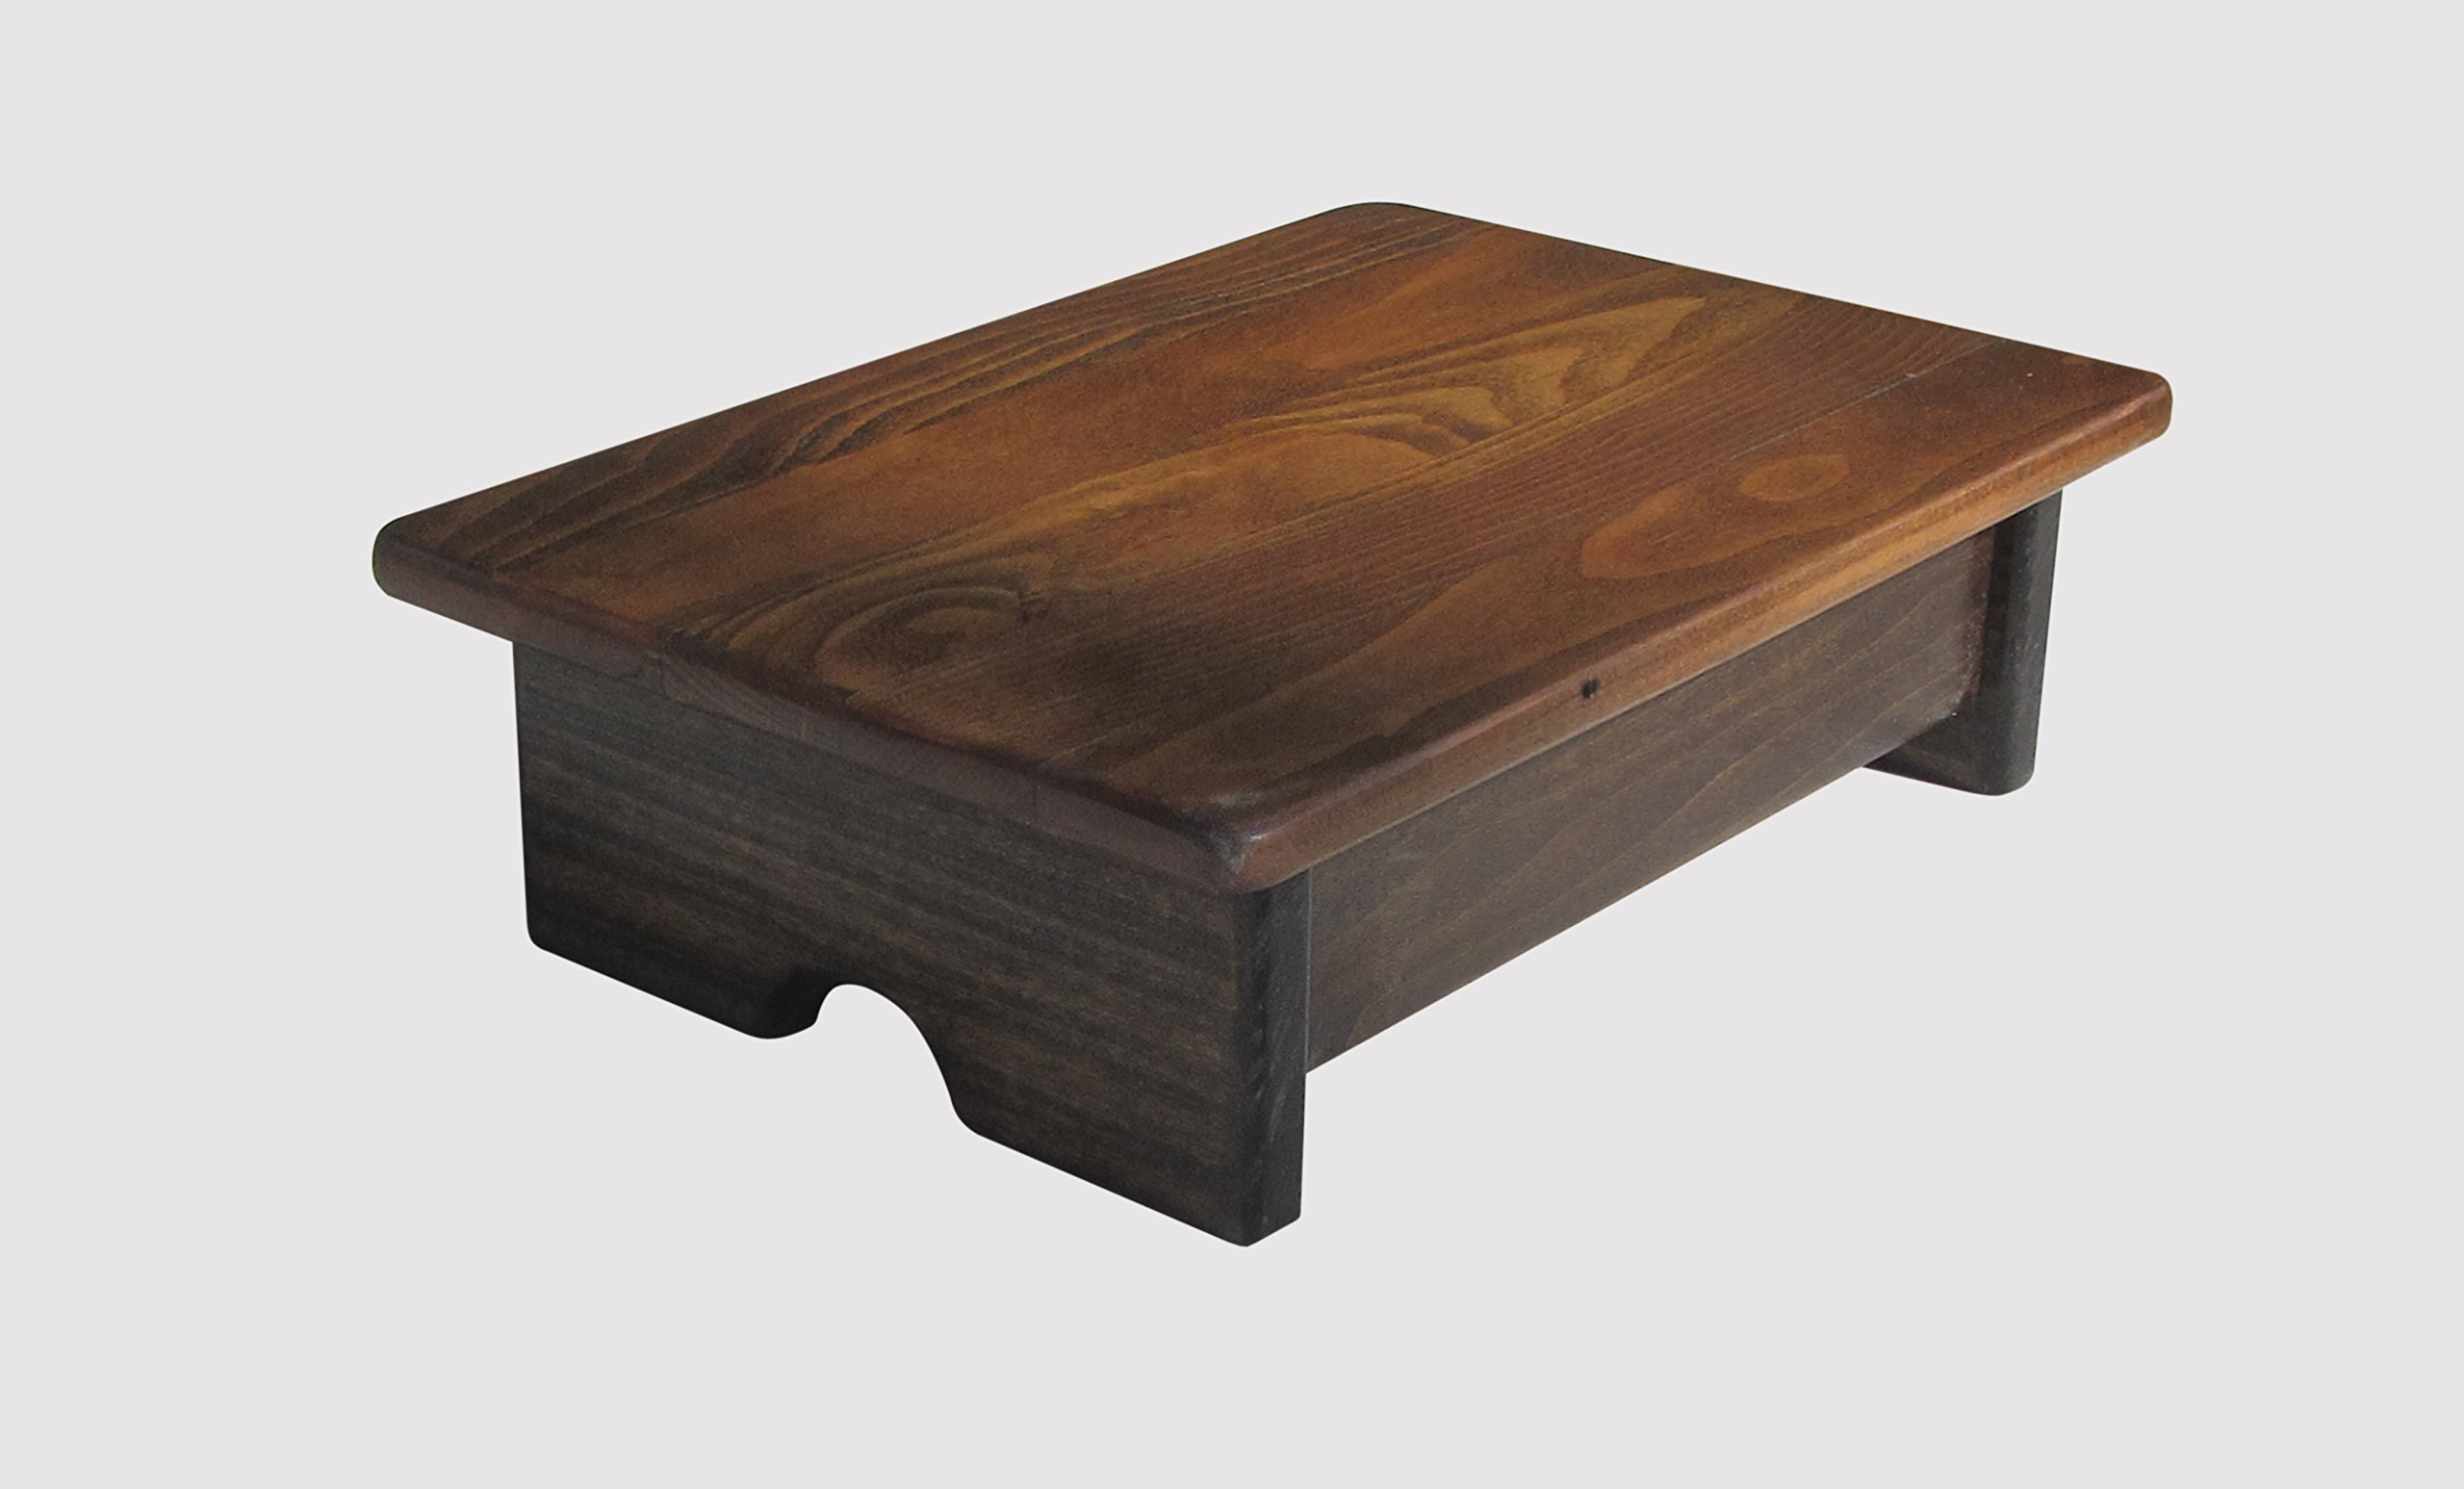 Foot Stool Poplar Wood 4'' Tall Salvaged 100 Year Old Wood (Made in the USA) (Walnut Stain)